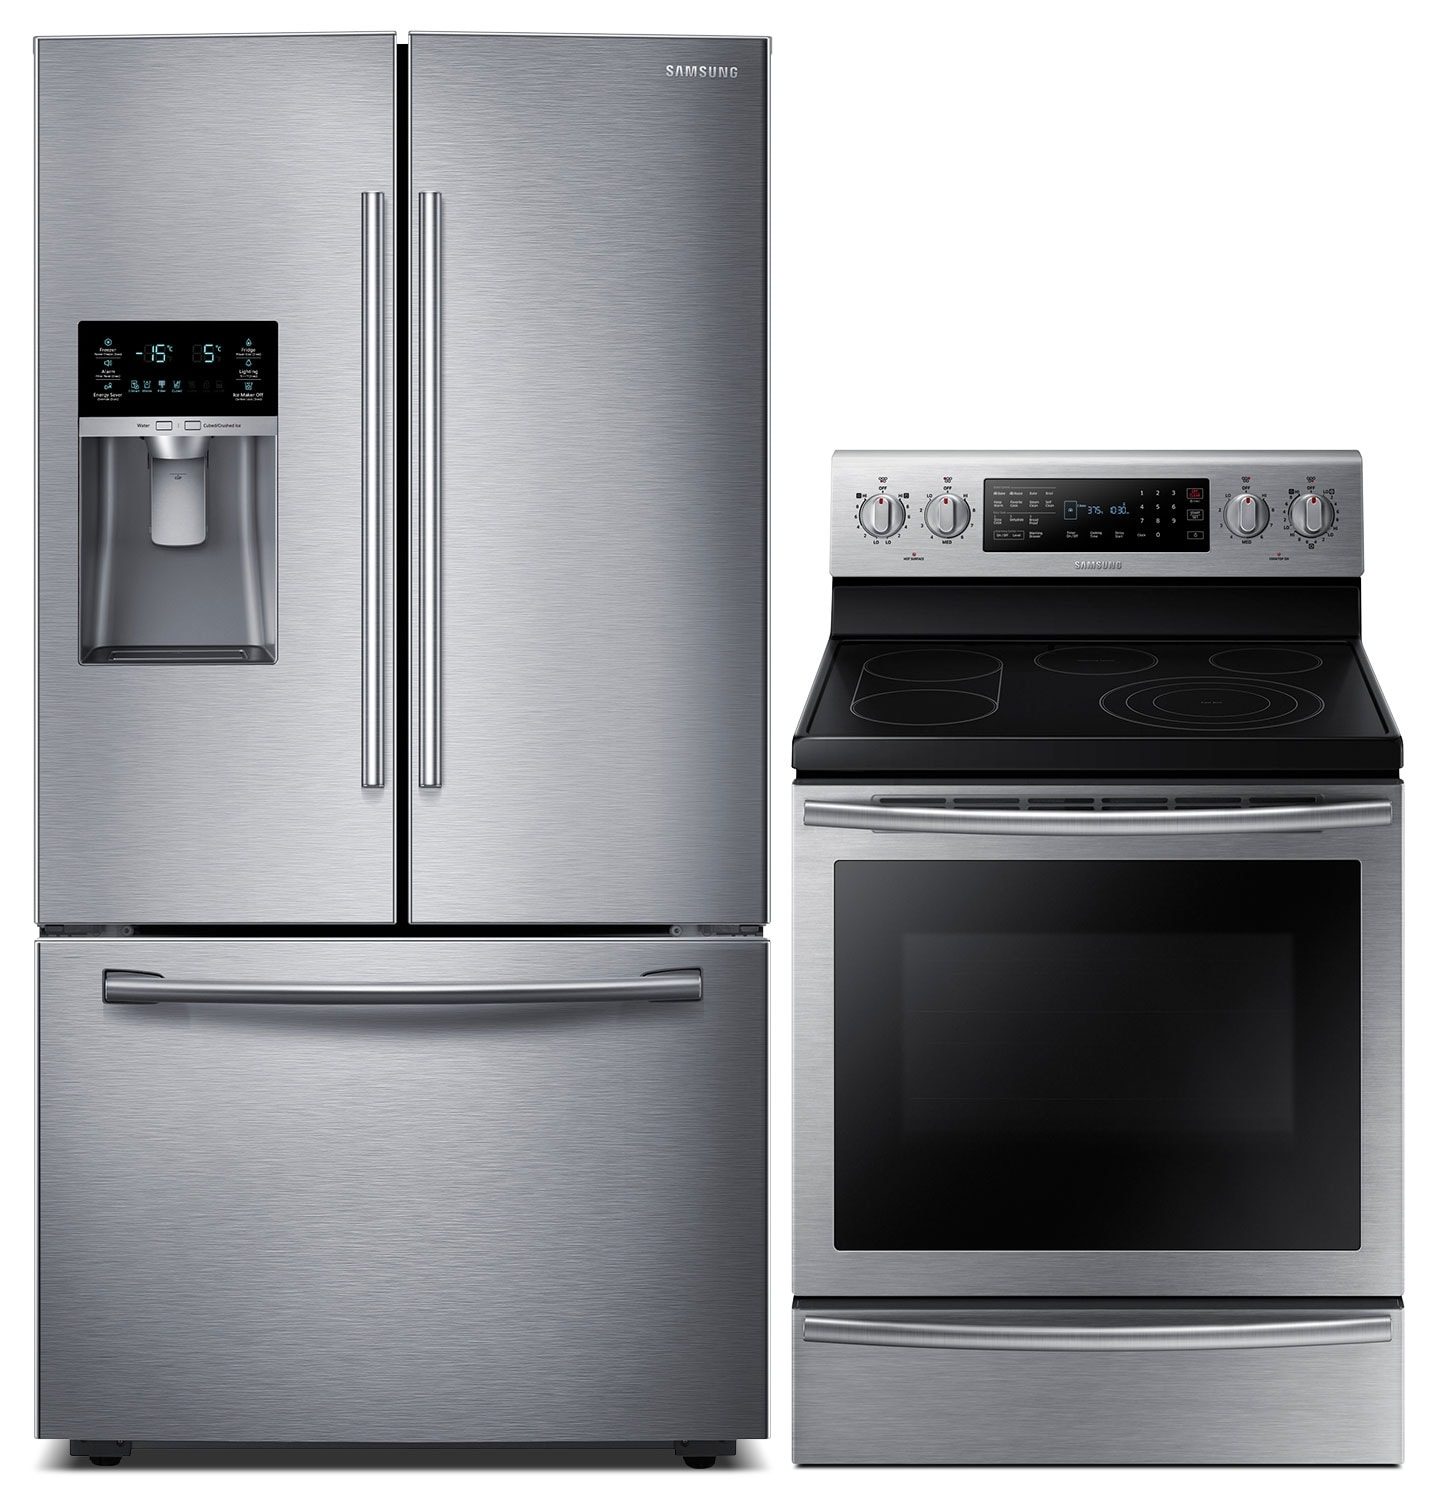 Cooking Products - Samsung 28 Cu. Ft. Refrigerator and 5.9 Cu. Ft. Range - Stainless Steel